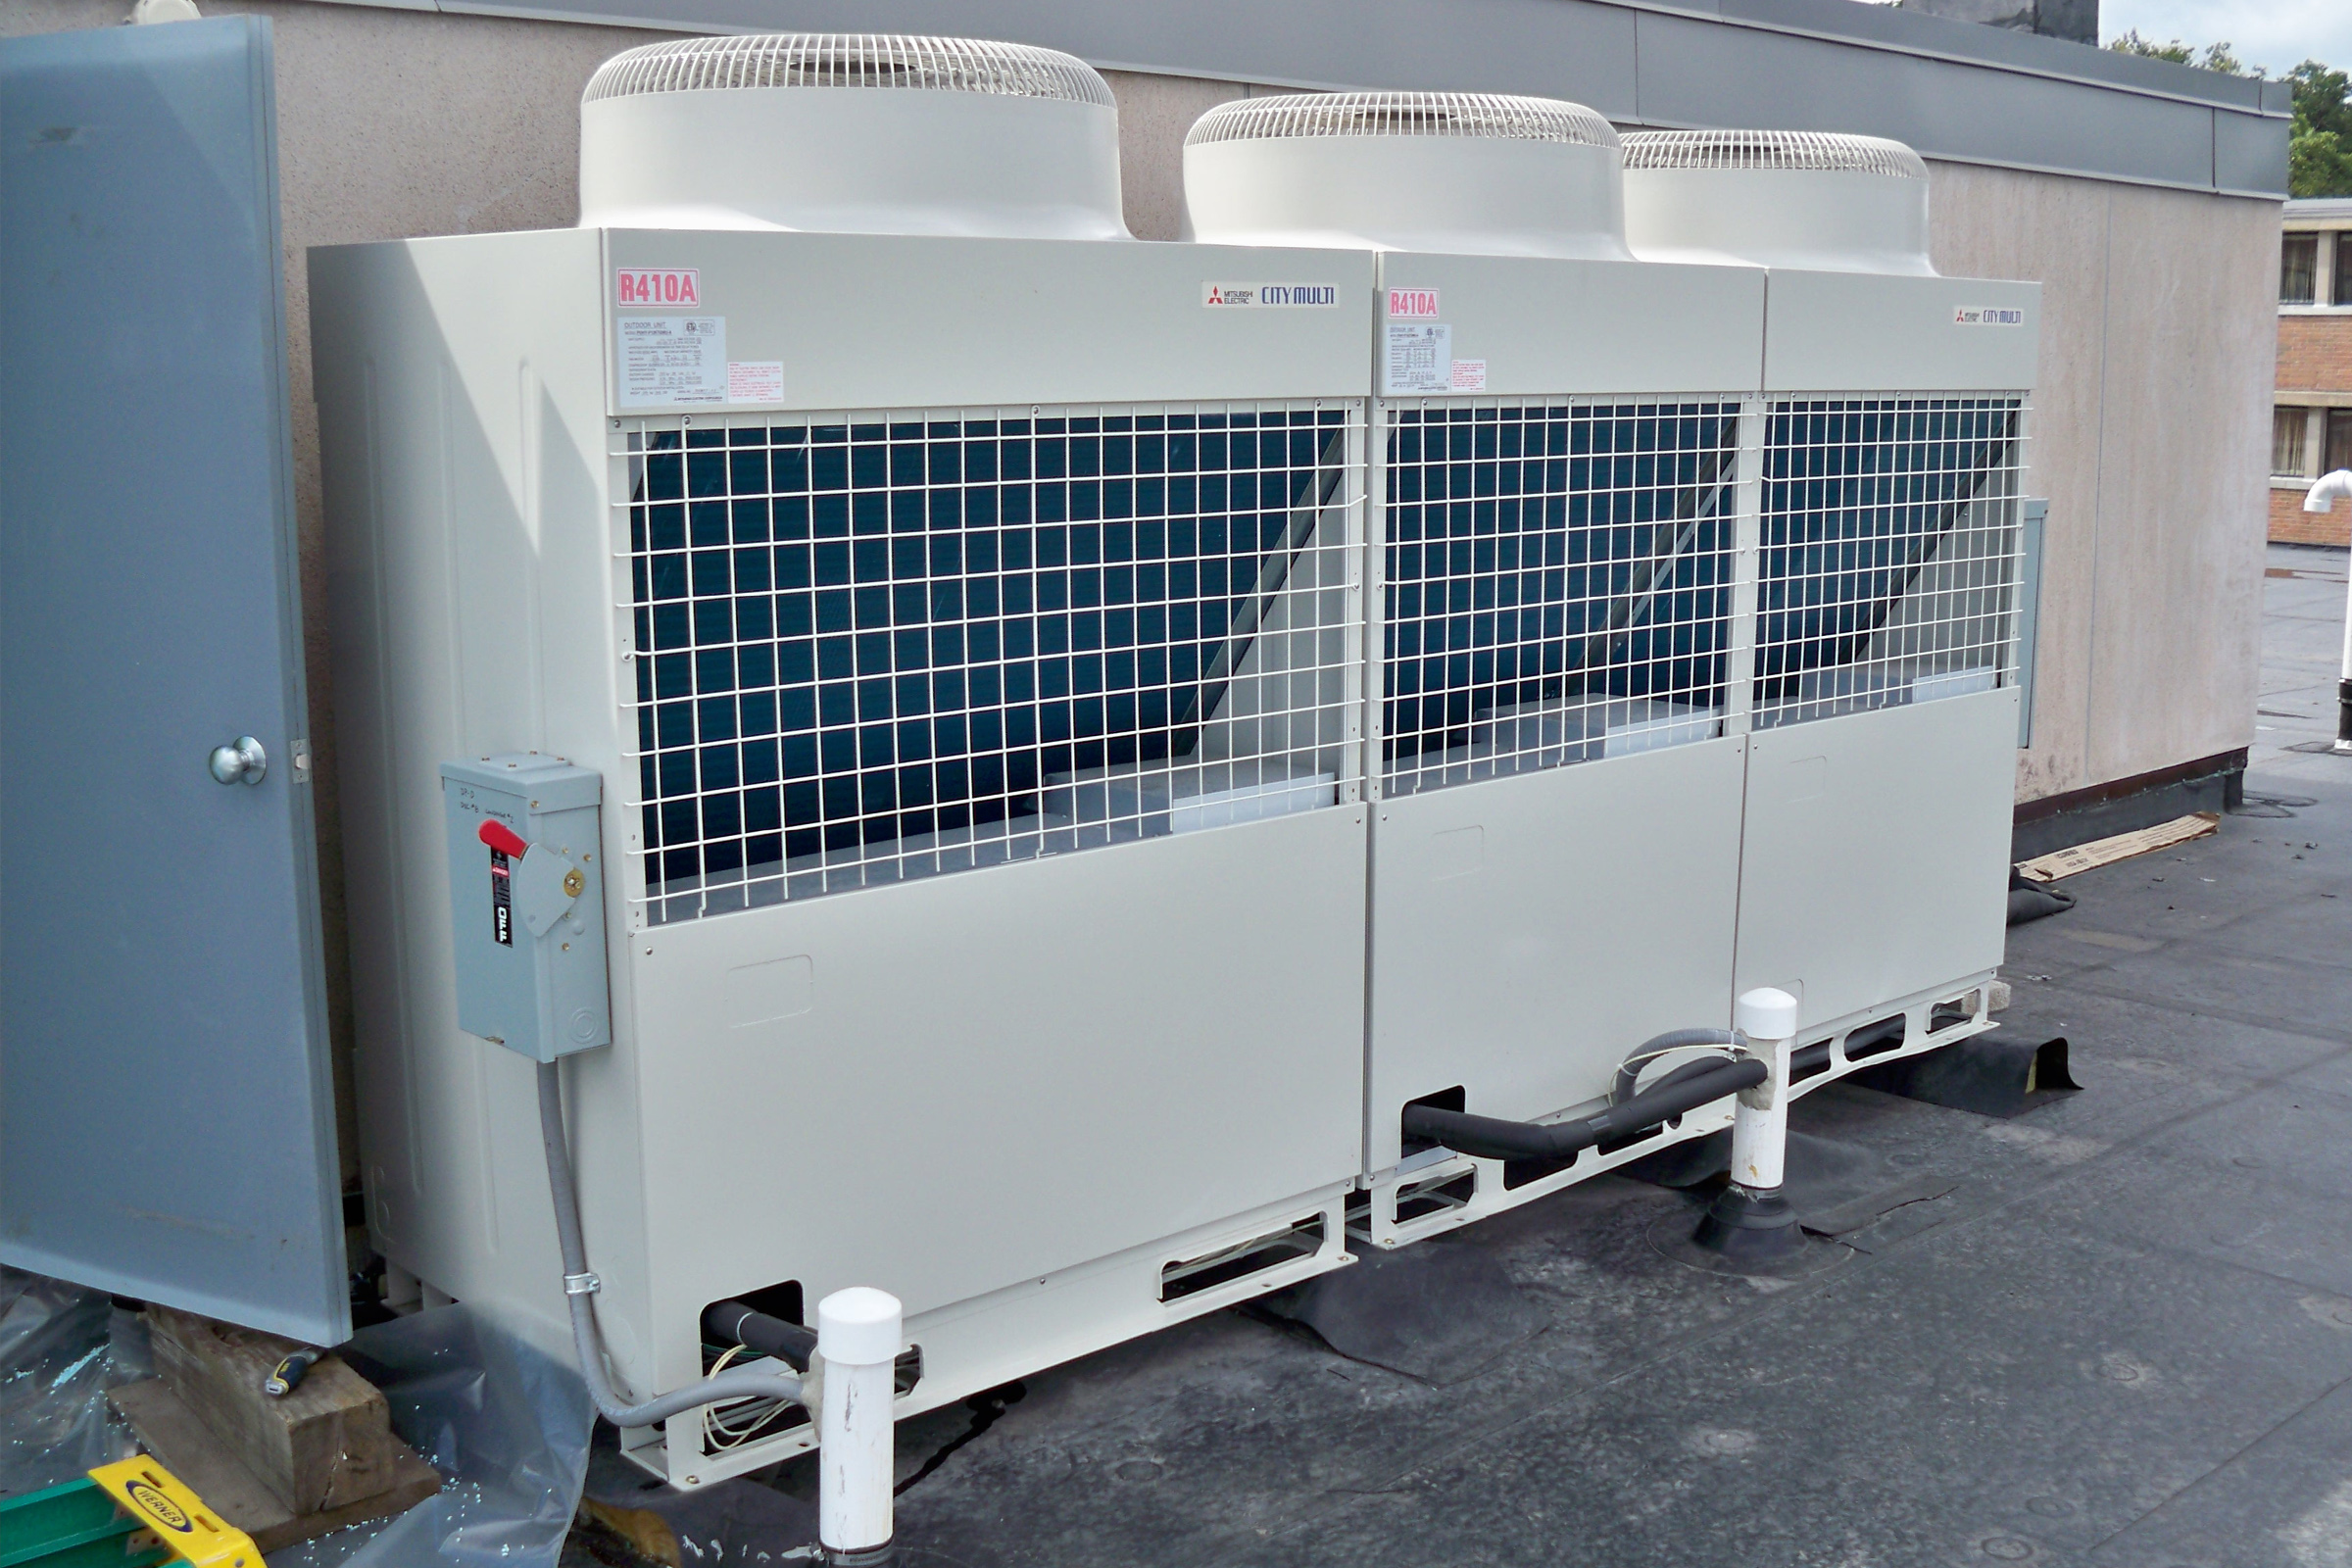 Upgrade rooftop air handler unit for existing commercial building.